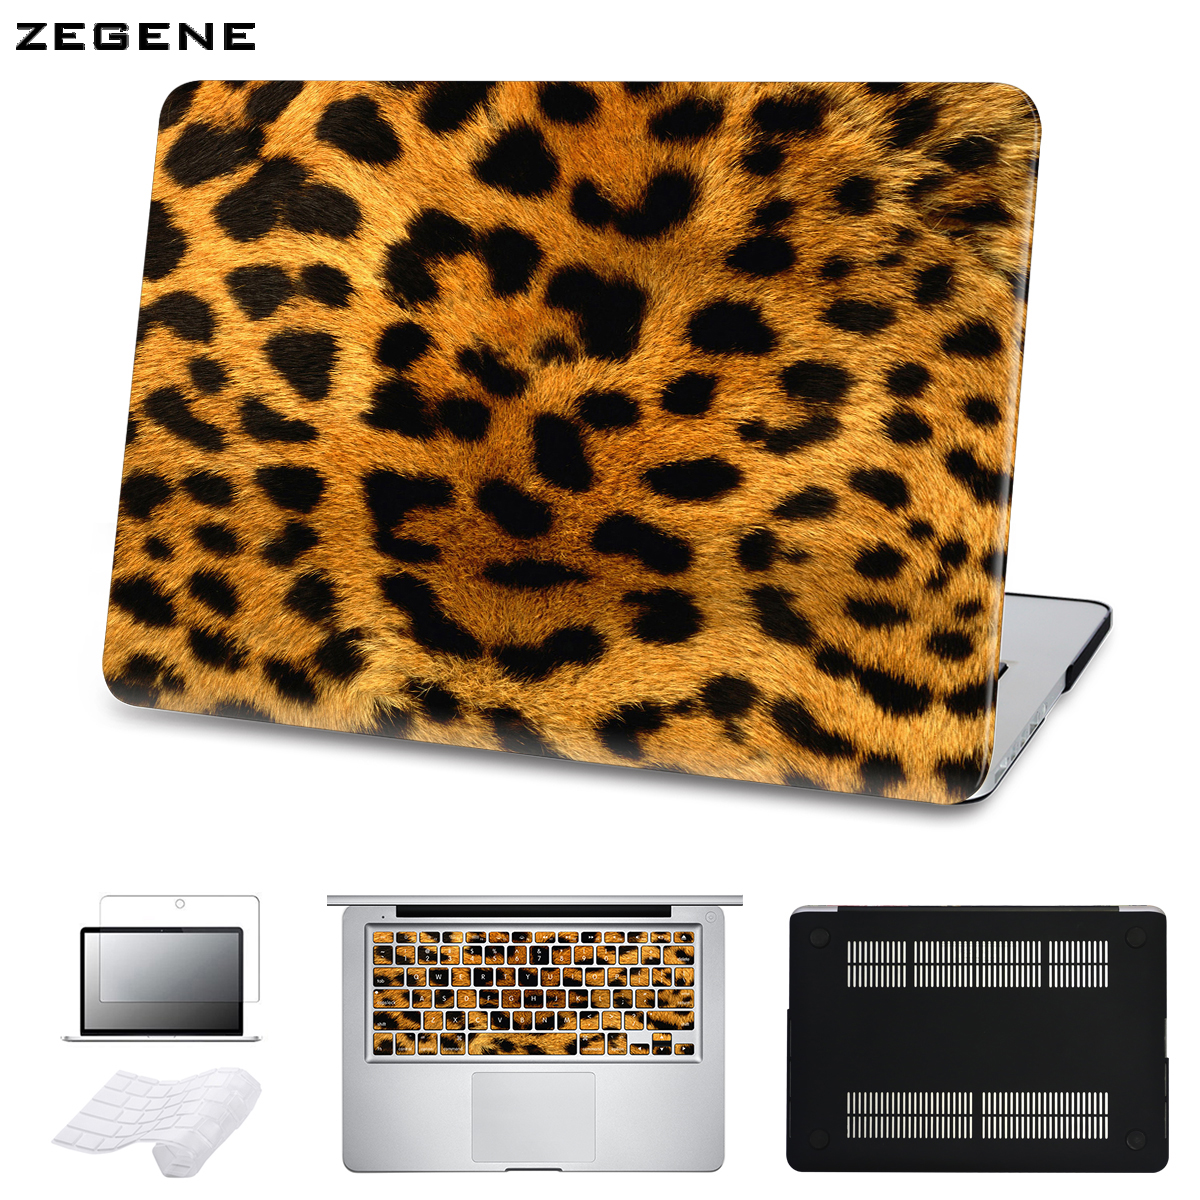 5 in 1 Bundle Leopard Cover Case For Apple Macbook Air Pro Retina 11 12 13 15 inch Hard Shell Laptop Bag With Keyboard Sticker hot soft felt sleeve bag case for apple macbook air pro retina 11 12 13 15 laptop anti scratch cover for mac book 13 3 inch